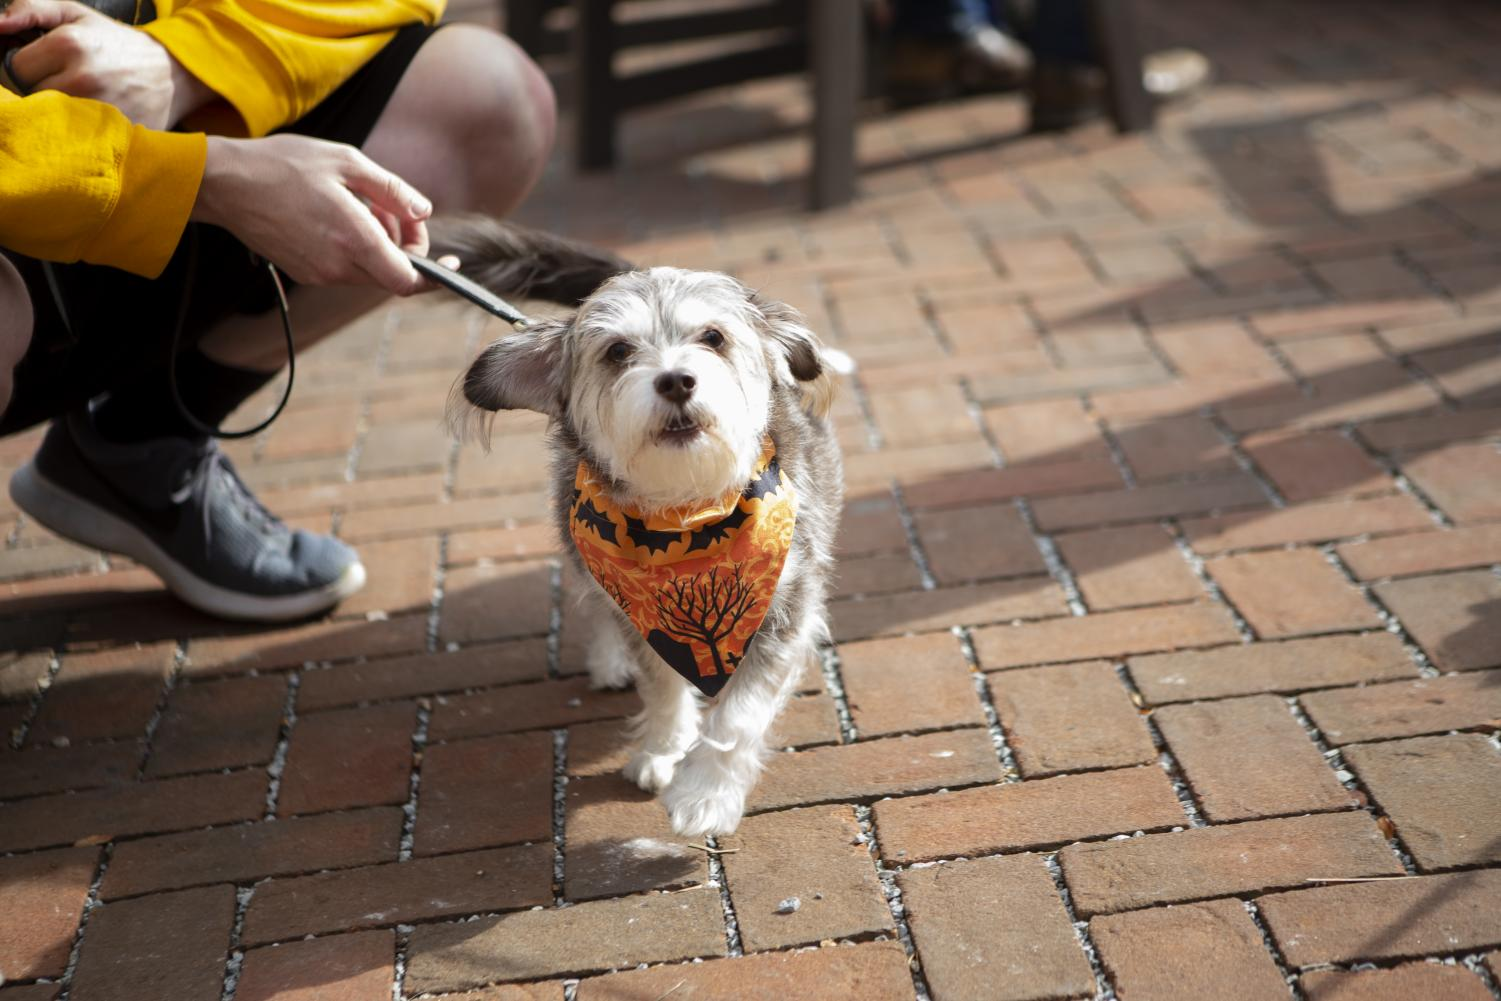 A dog displays Halloween spirit at Wag-O-Ween. Wag-O-Ween was hosted by Last Hope Animal Rescue and was held at Big Grove Brewery on Sunday, October 20, 2019. (Nichole Harris/The Daily Iowan)